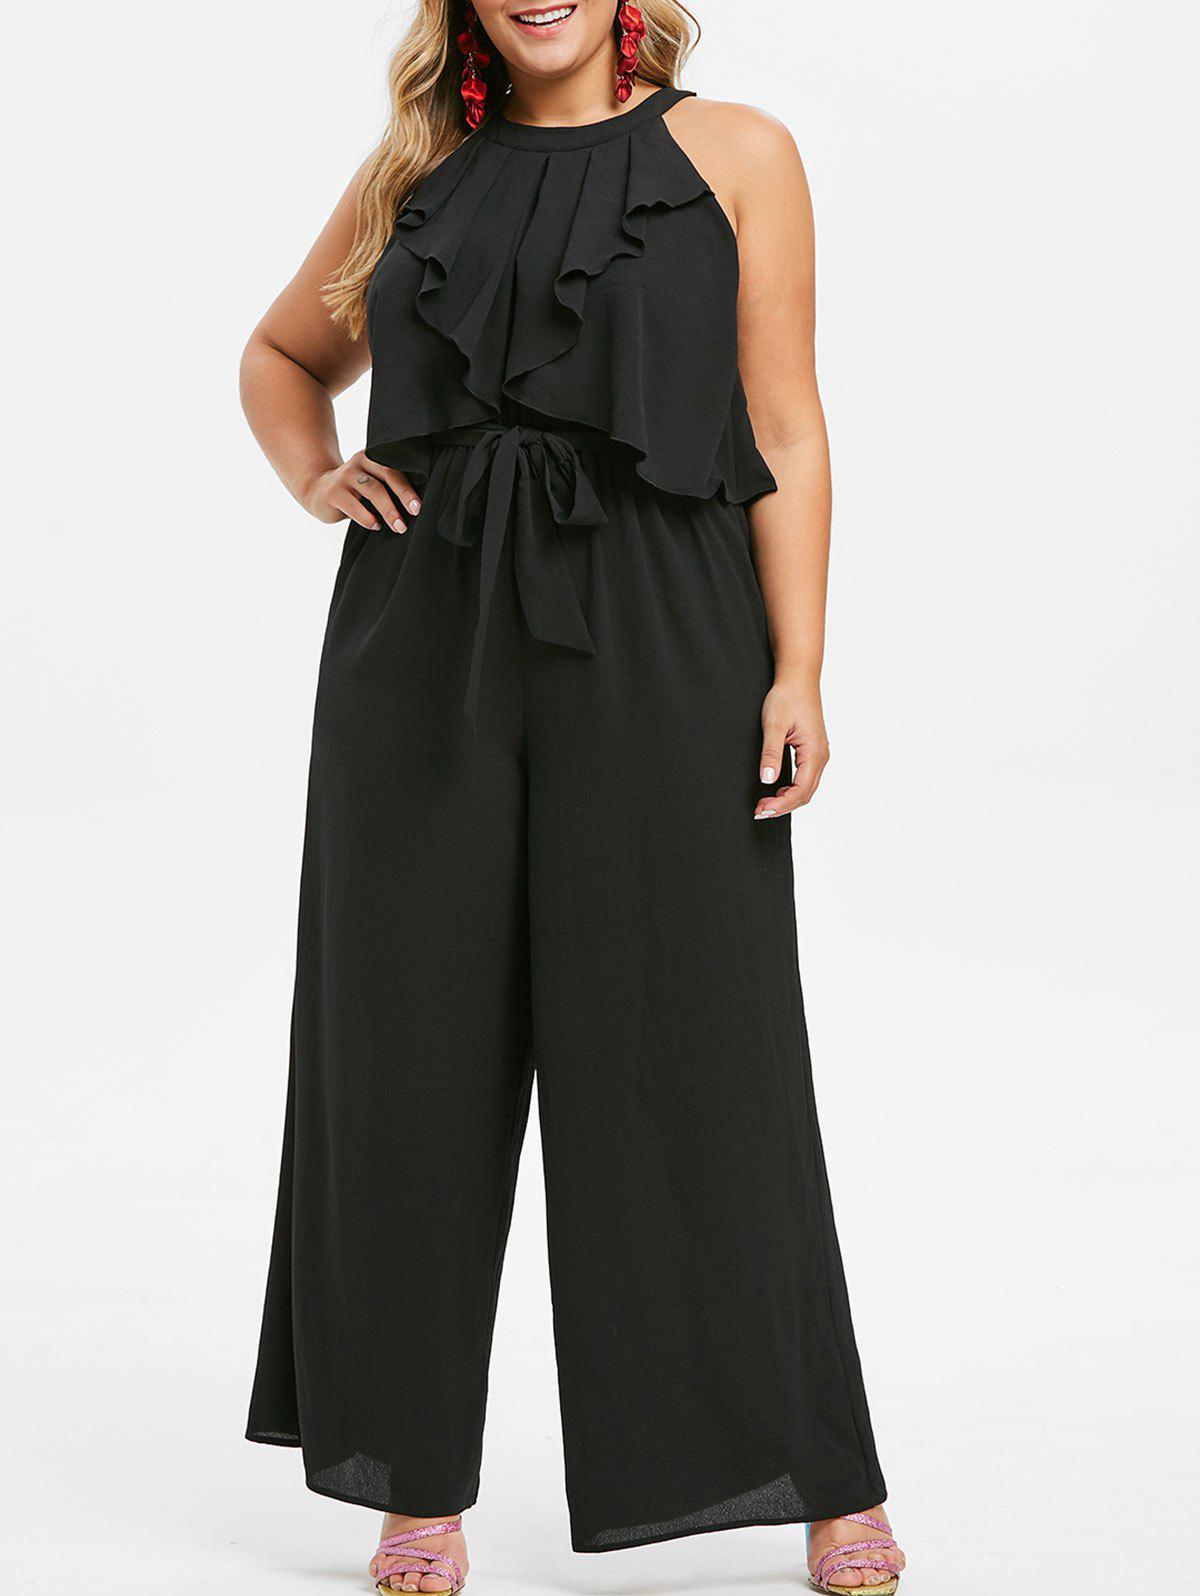 Fashion Plus Size Sleeveless Flounce Belted Wide Leg Jumpsuit